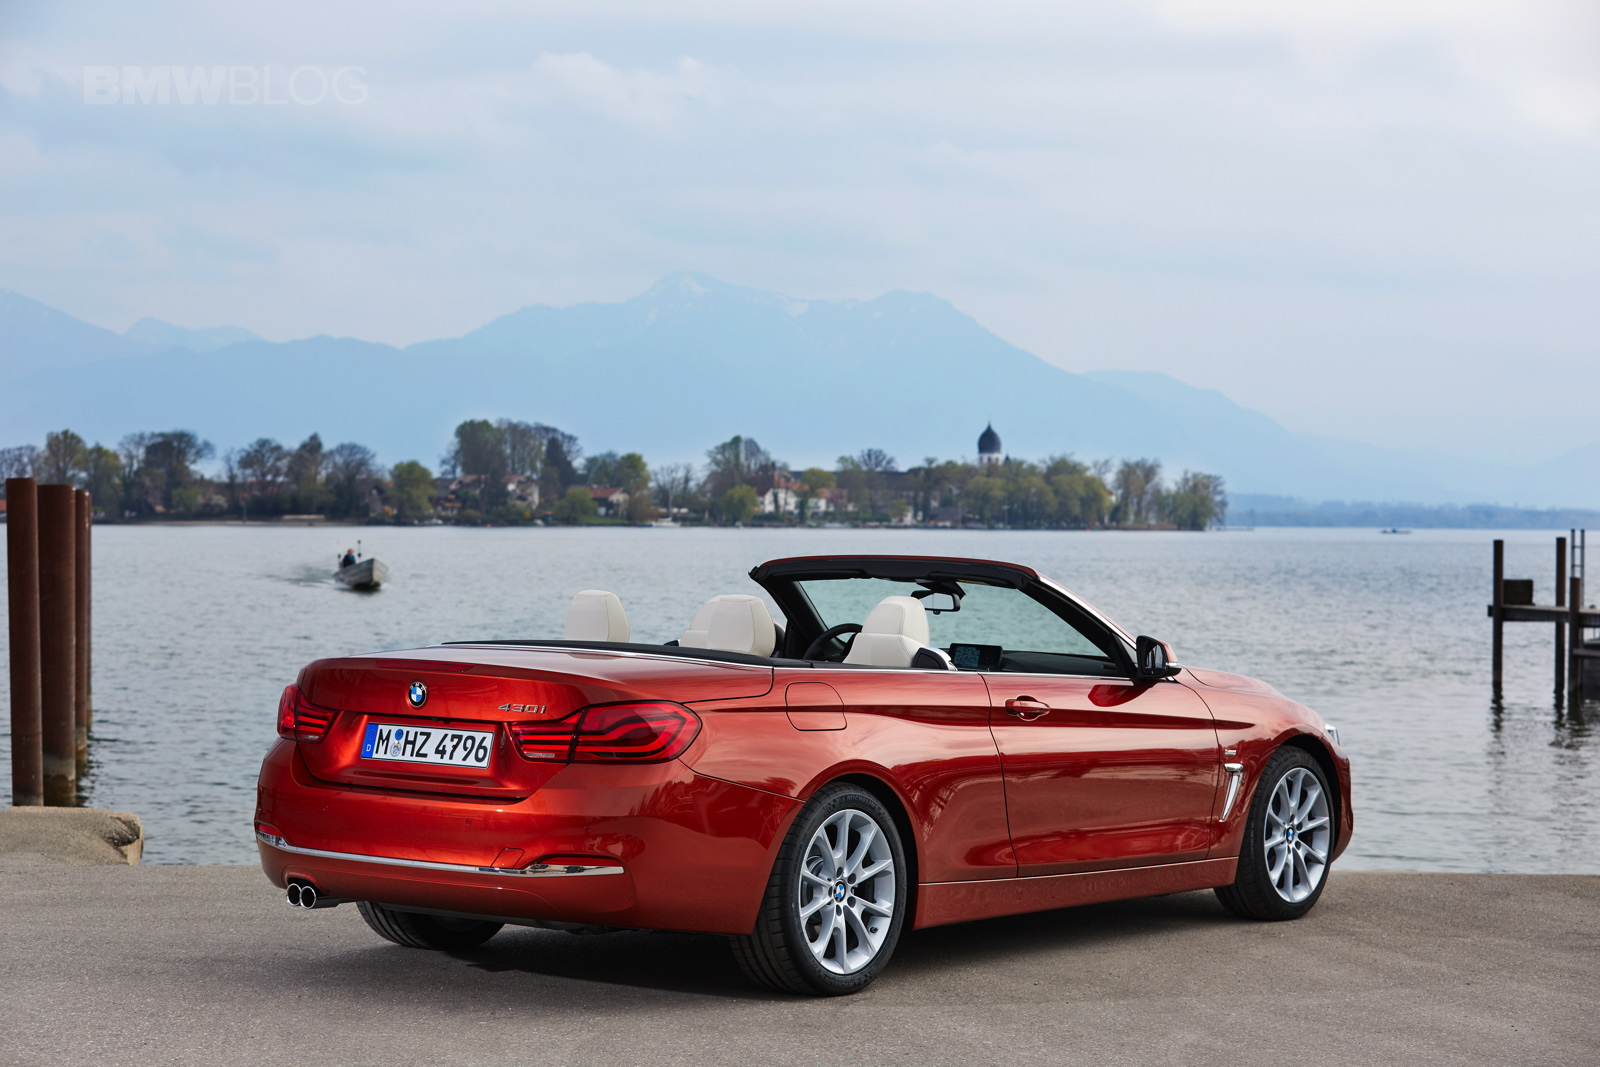 SPIED: BMW 4 Series Convertible caught with soft-top roof